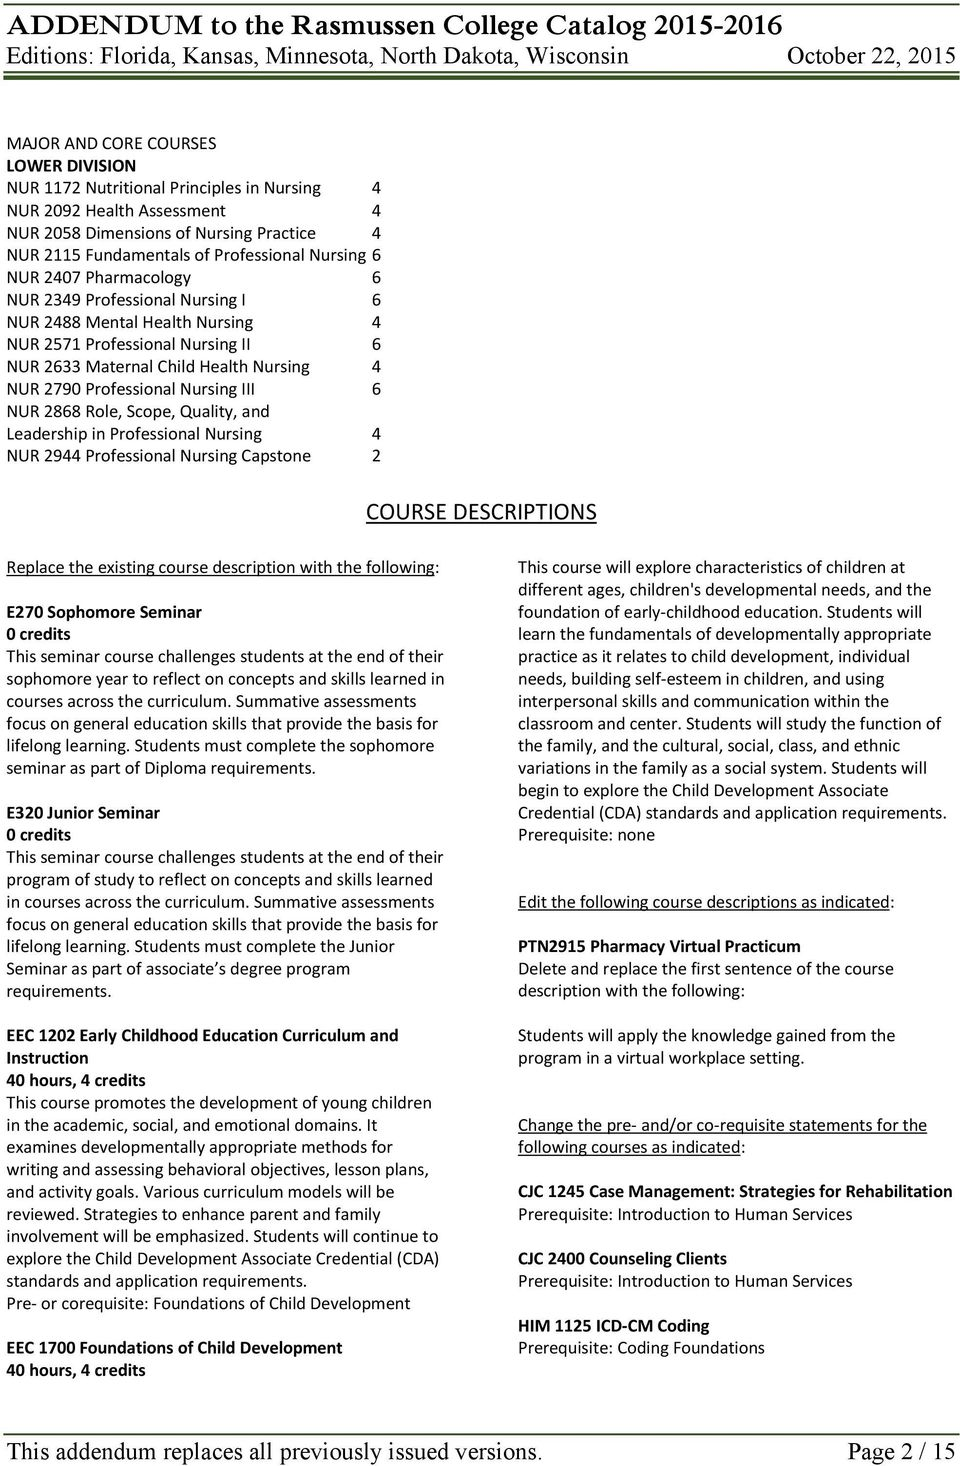 2868 Role, Scope, Quality, and Leadership in Professional Nursing 4 NUR 2944 Professional Nursing Capstone 2 COURSE DESCRIPTIONS Replace the existing course description with the following: E270